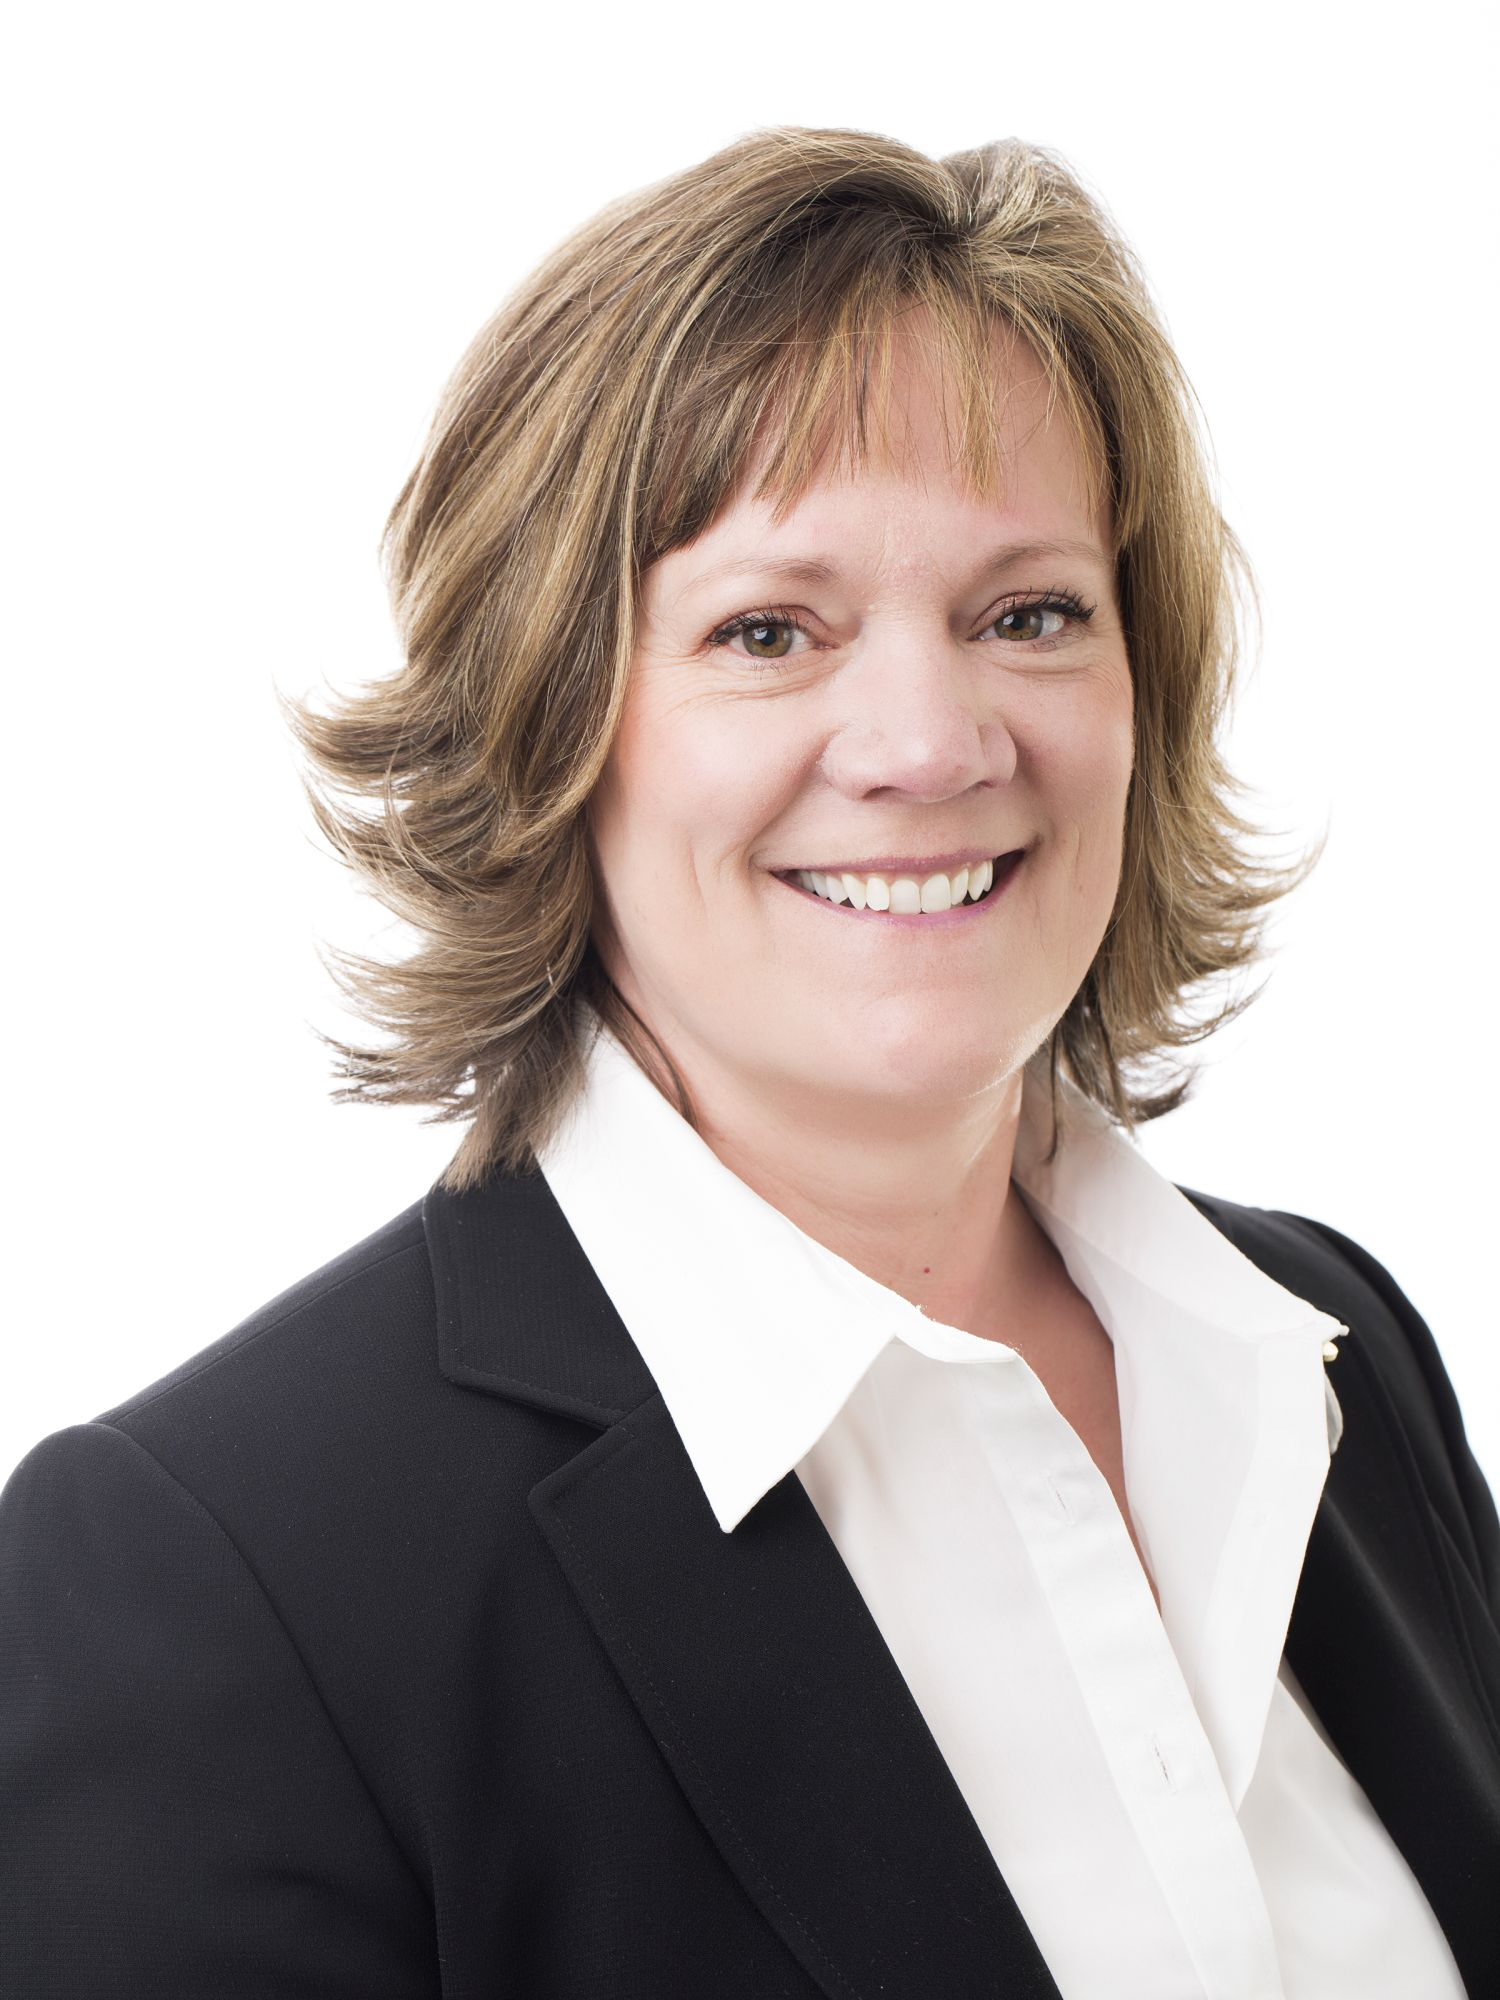 Heather Dougall, Real Estate Agent - Calgary, AB